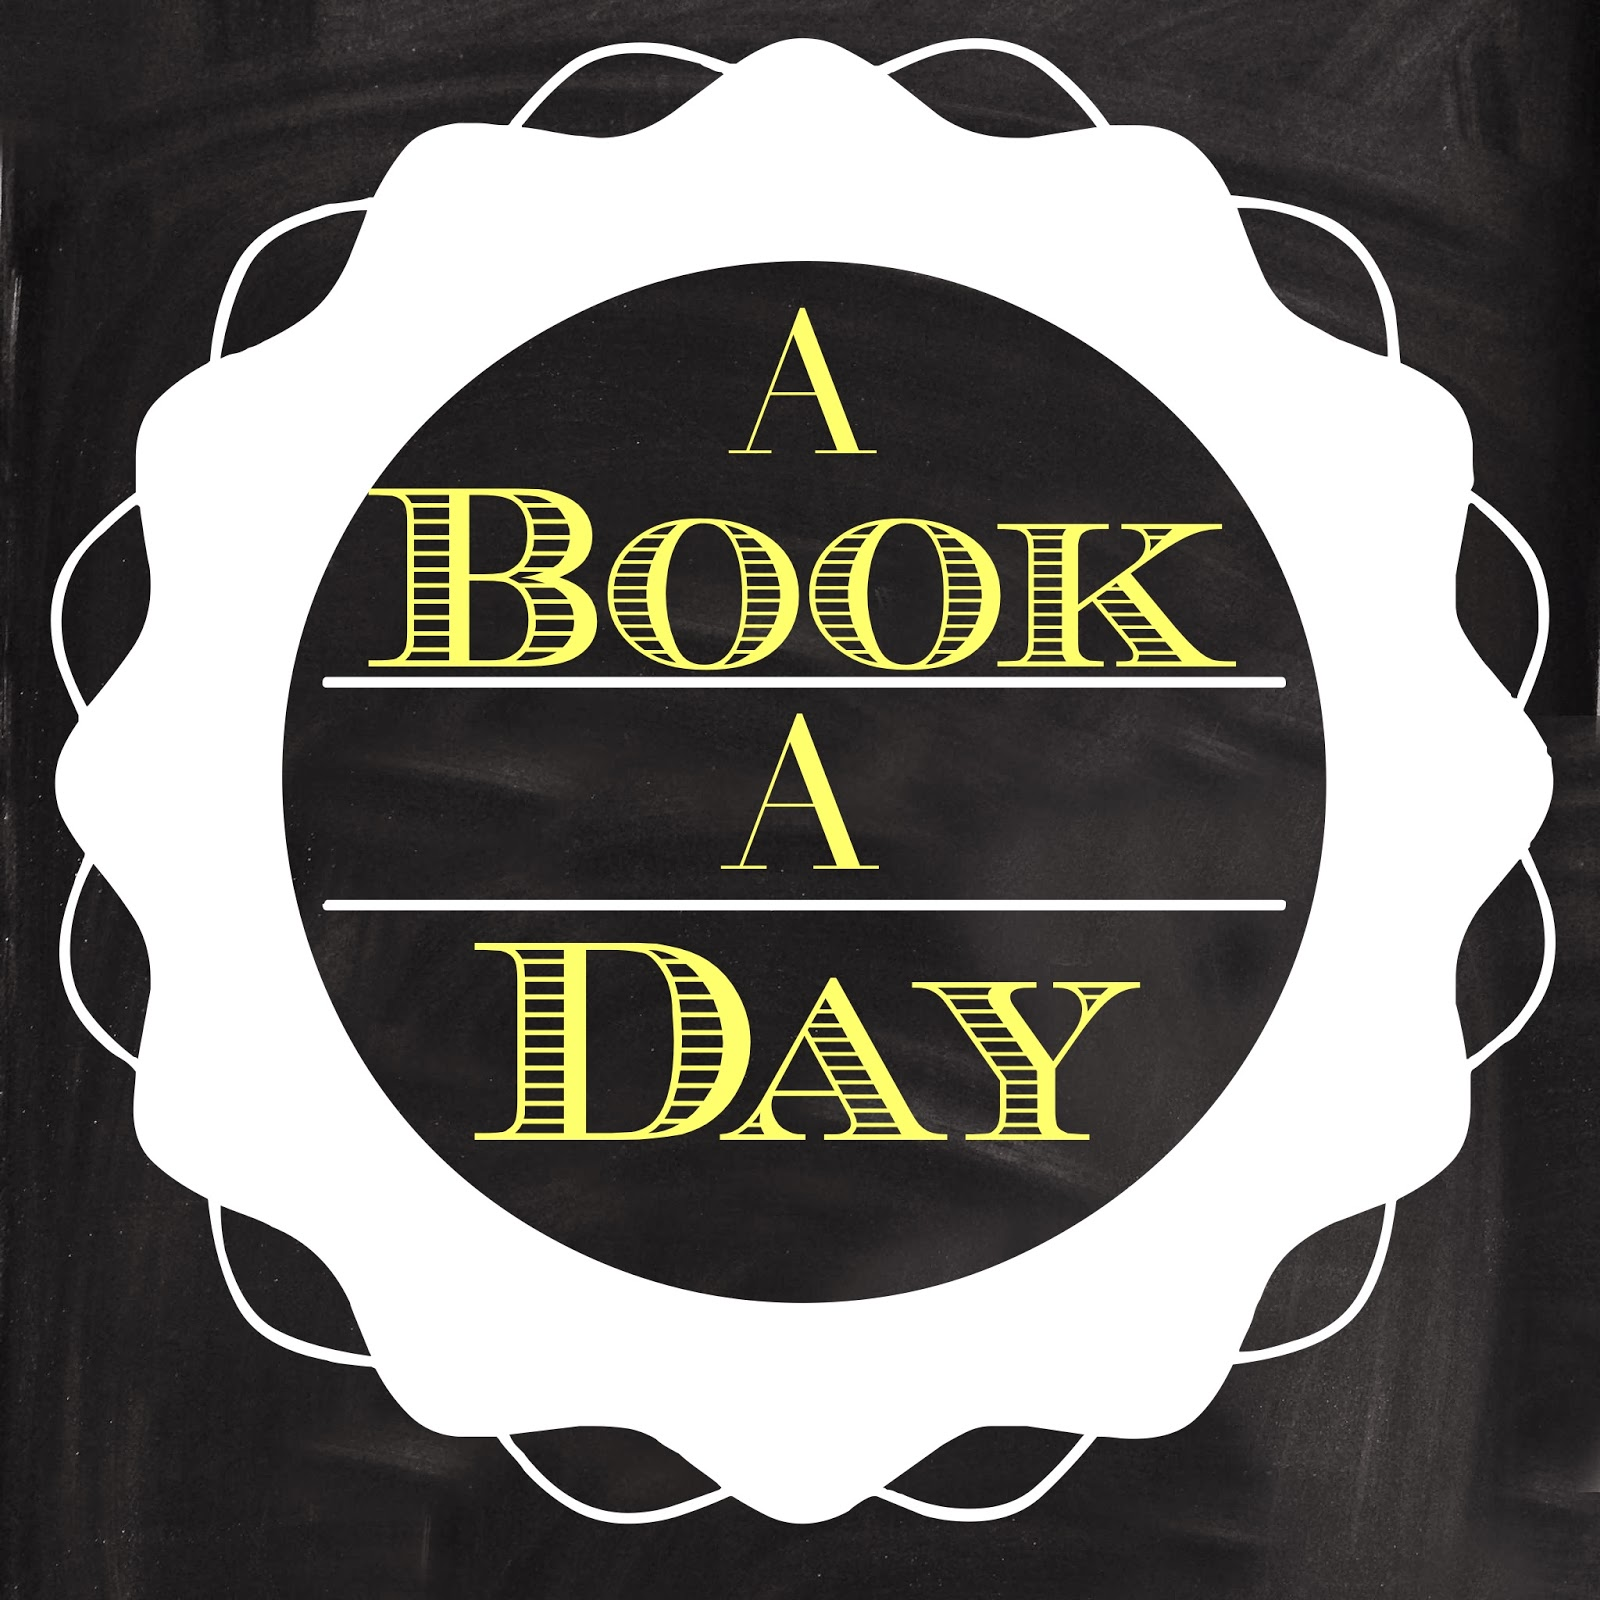 Books you can read in a day- Alohamora http://alohamoraopenabook.blogspot.com/